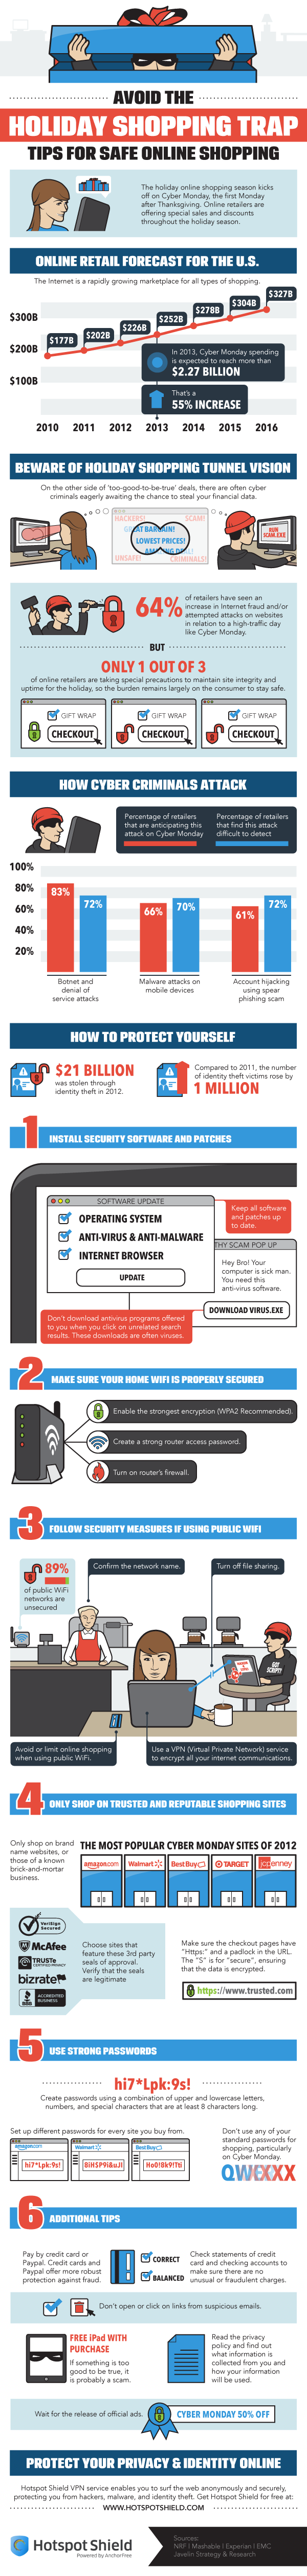 Tips for Safe Online Shopping #Infographic